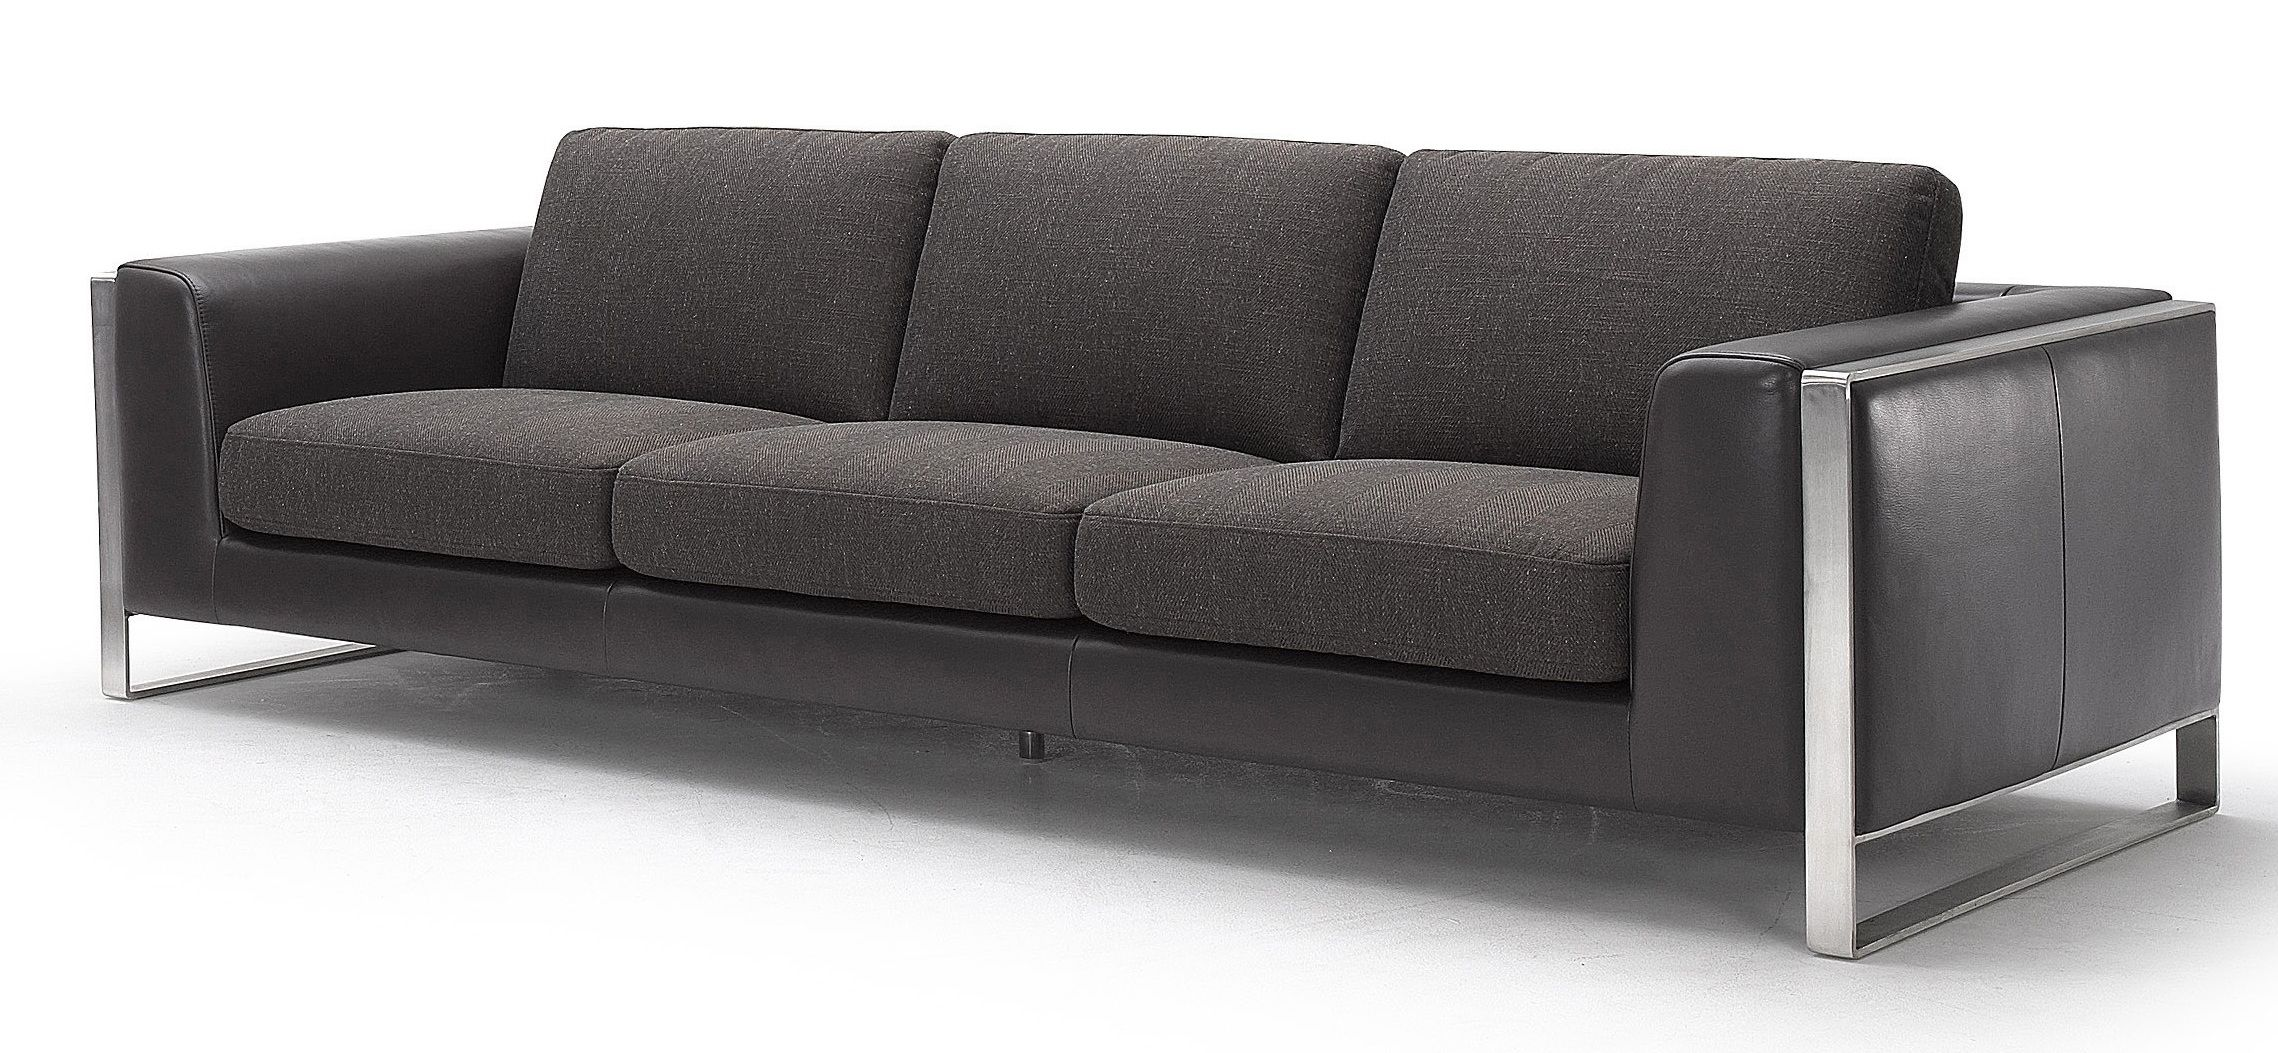 Contemporary Couch Home Furniture Improvement With Contemporary Sofa Huz Name